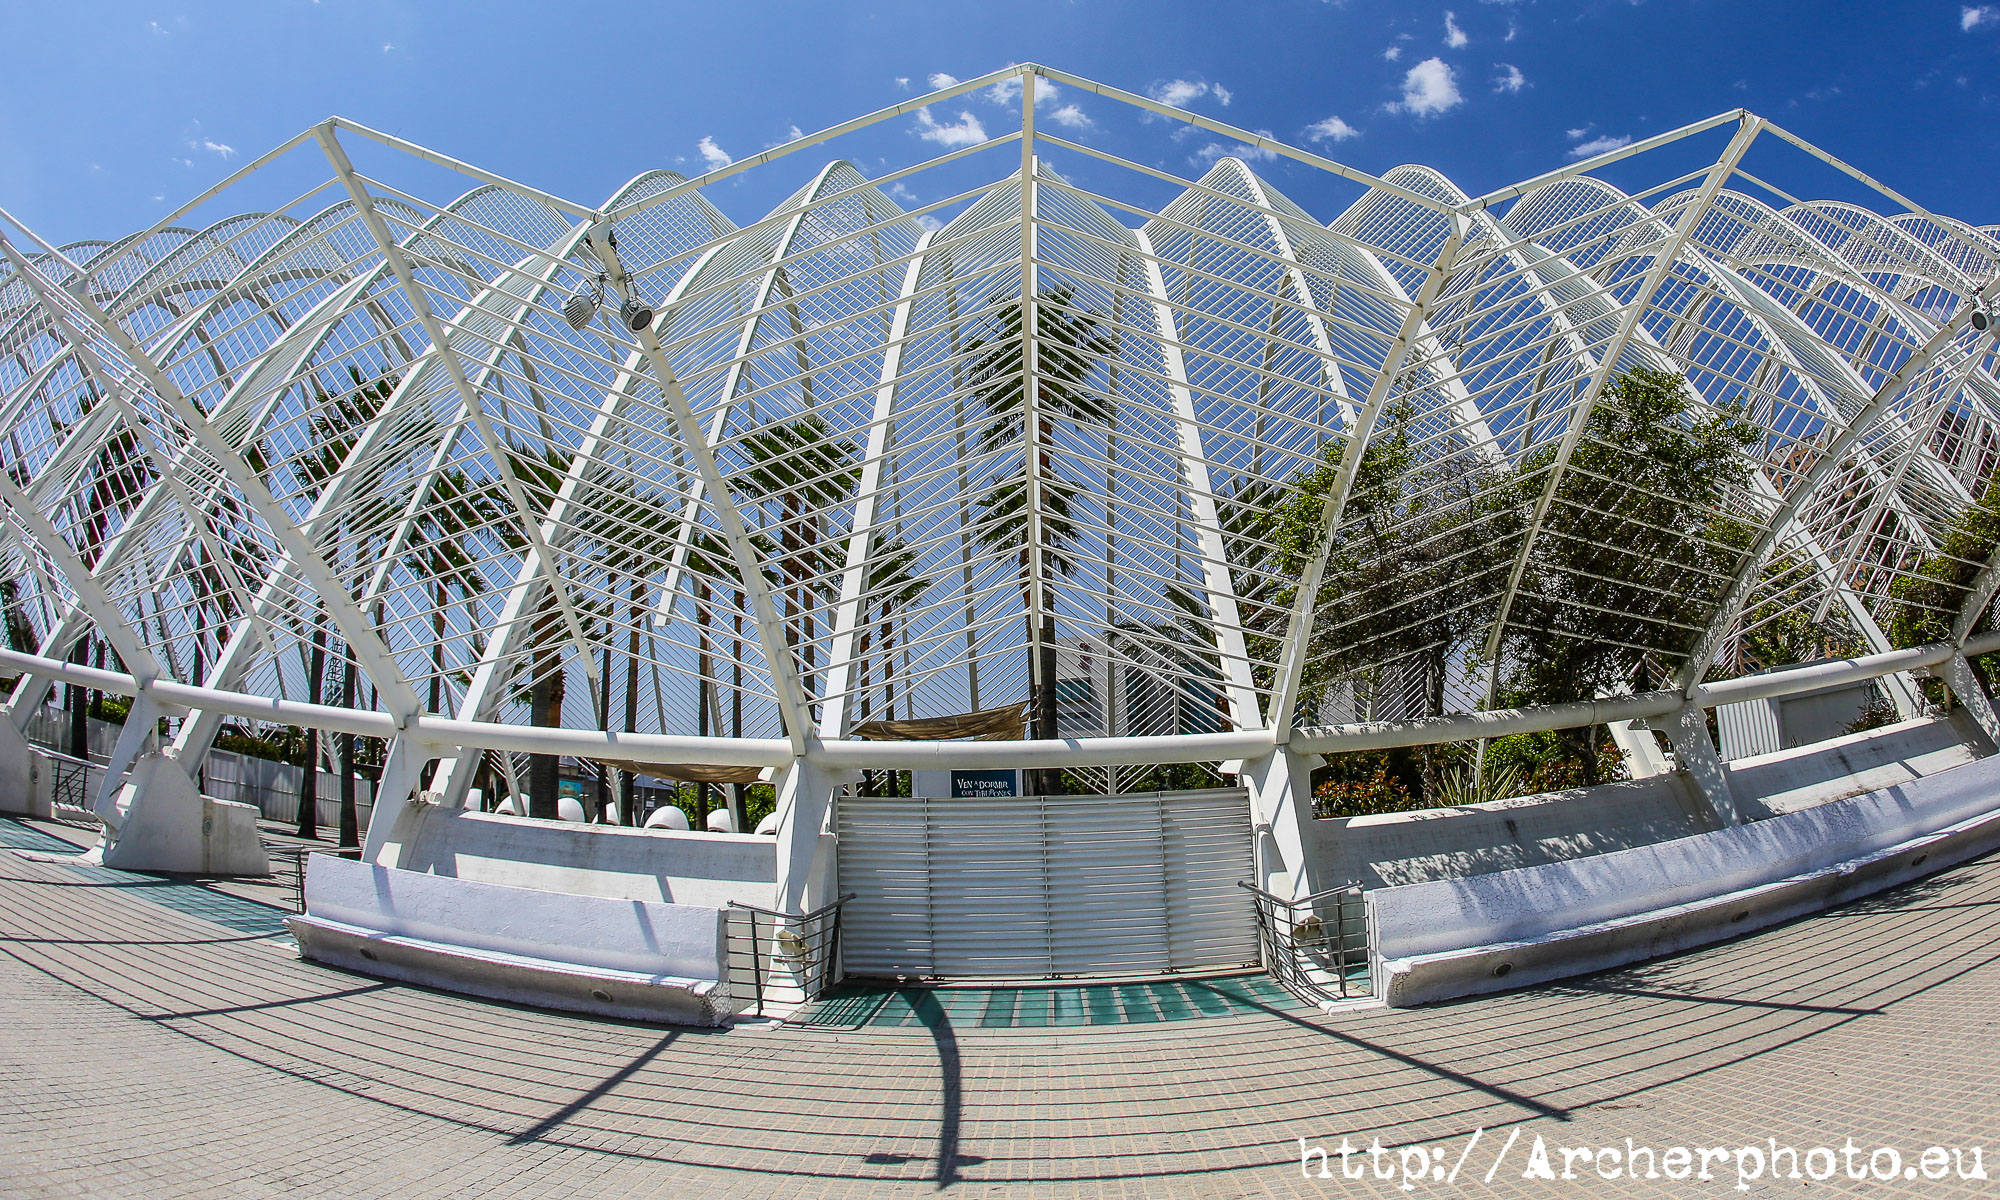 Umbracle, València, by Archerphoto